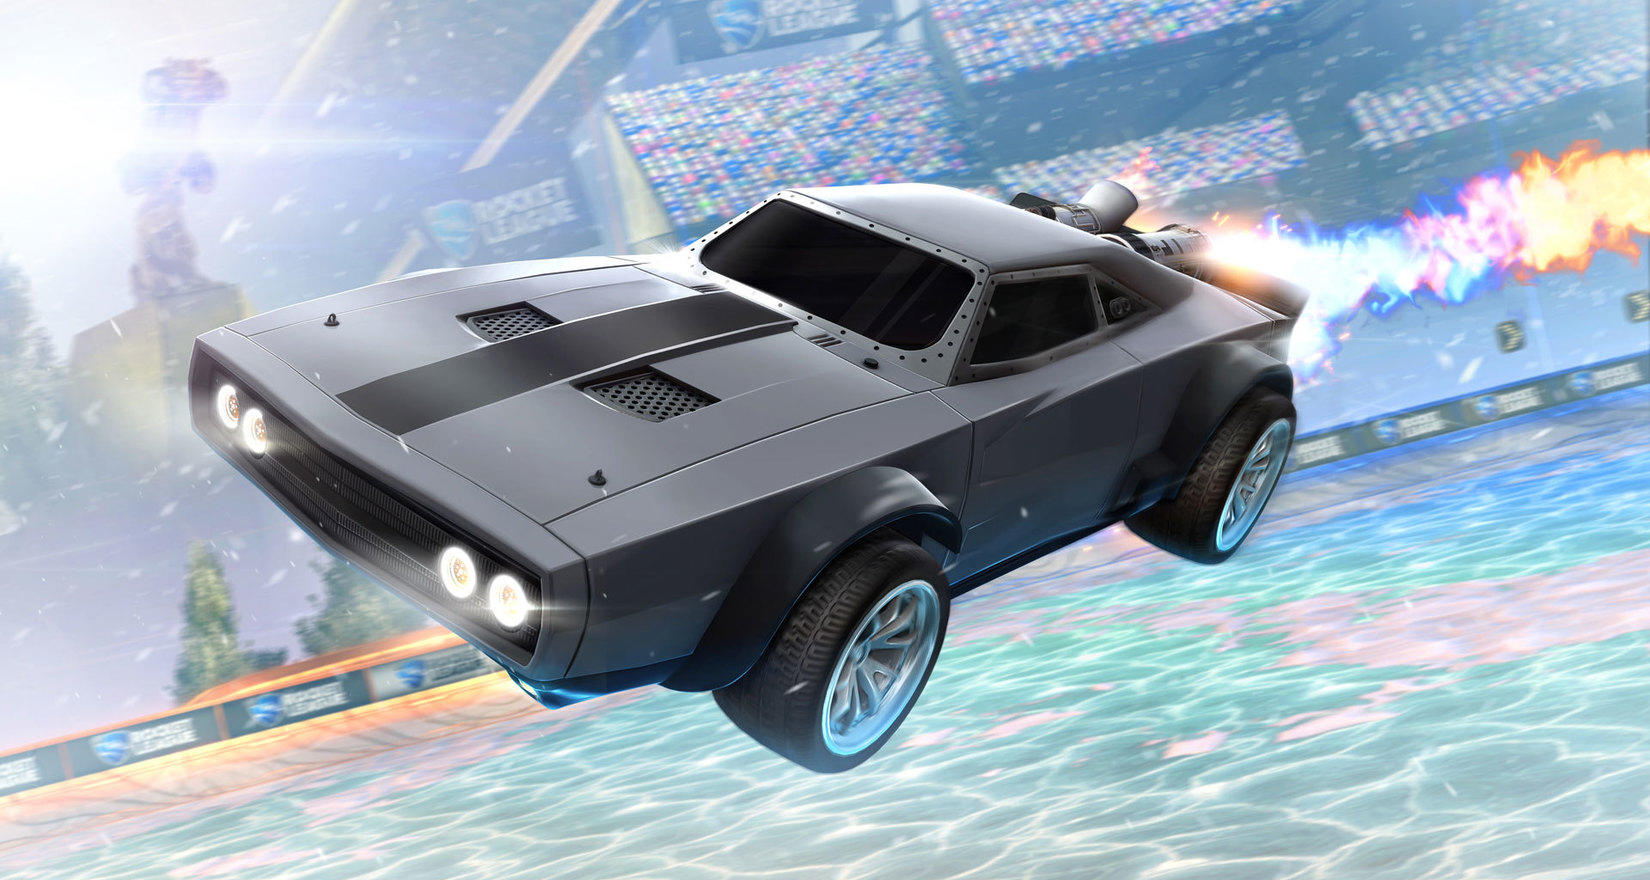 Photo of Rocket League: The Fate of the Furious DLC is Now Available